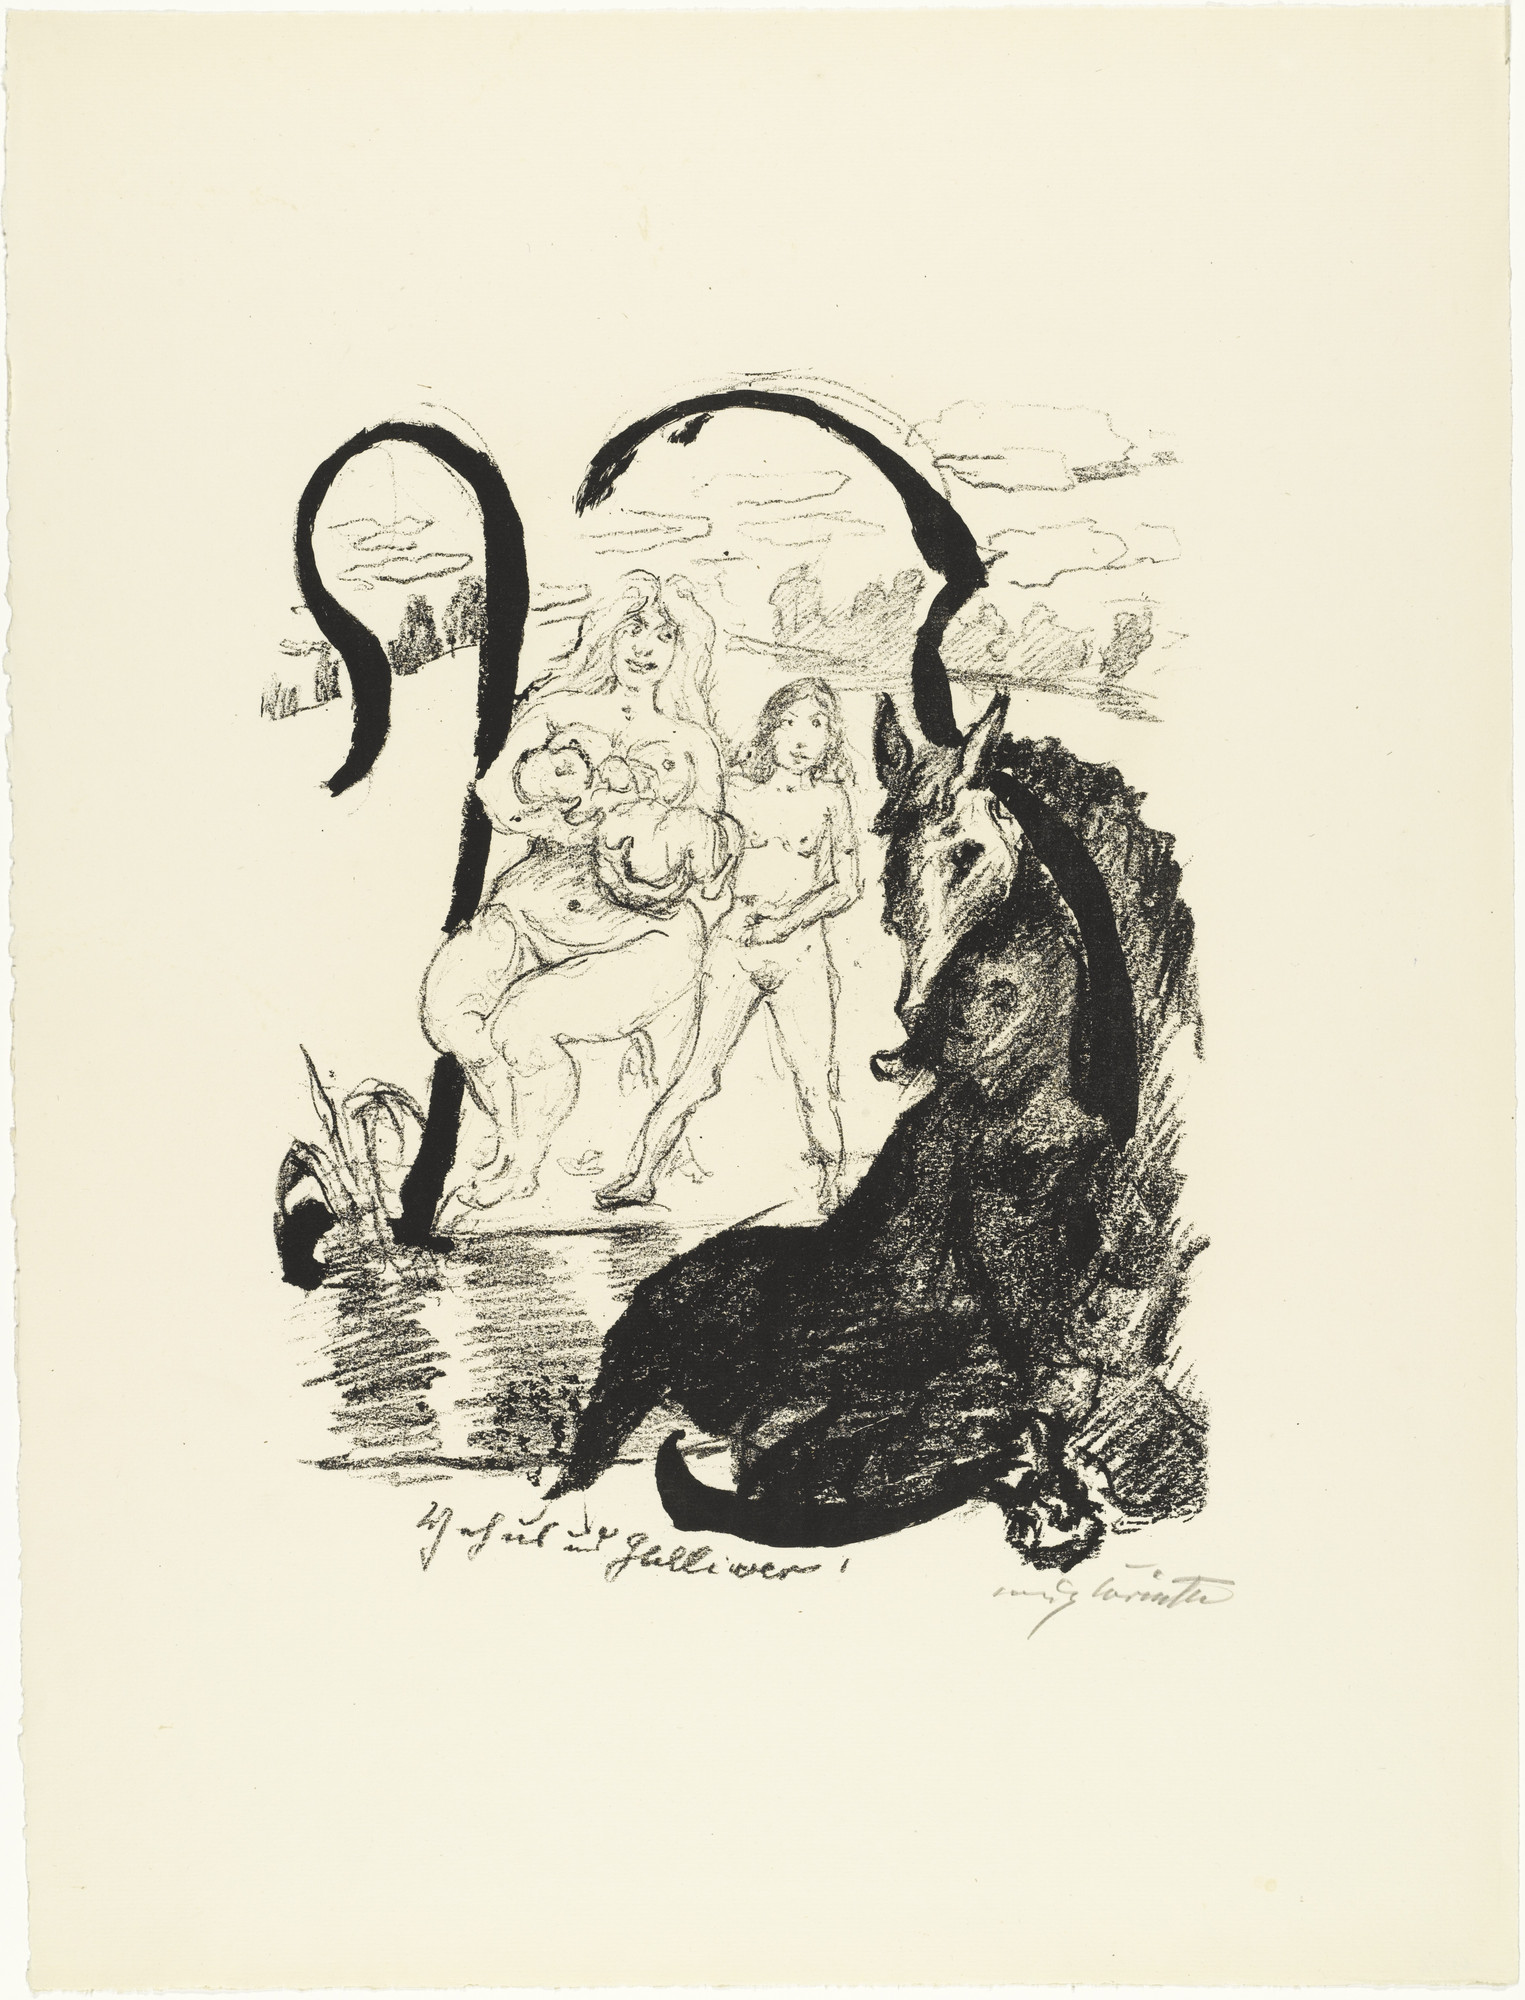 Lovis Corinth. Letter Y (Buchstabe Y) from the illustrated book in portfolio form The ABCs (Das ABC). (1916, published 1917)